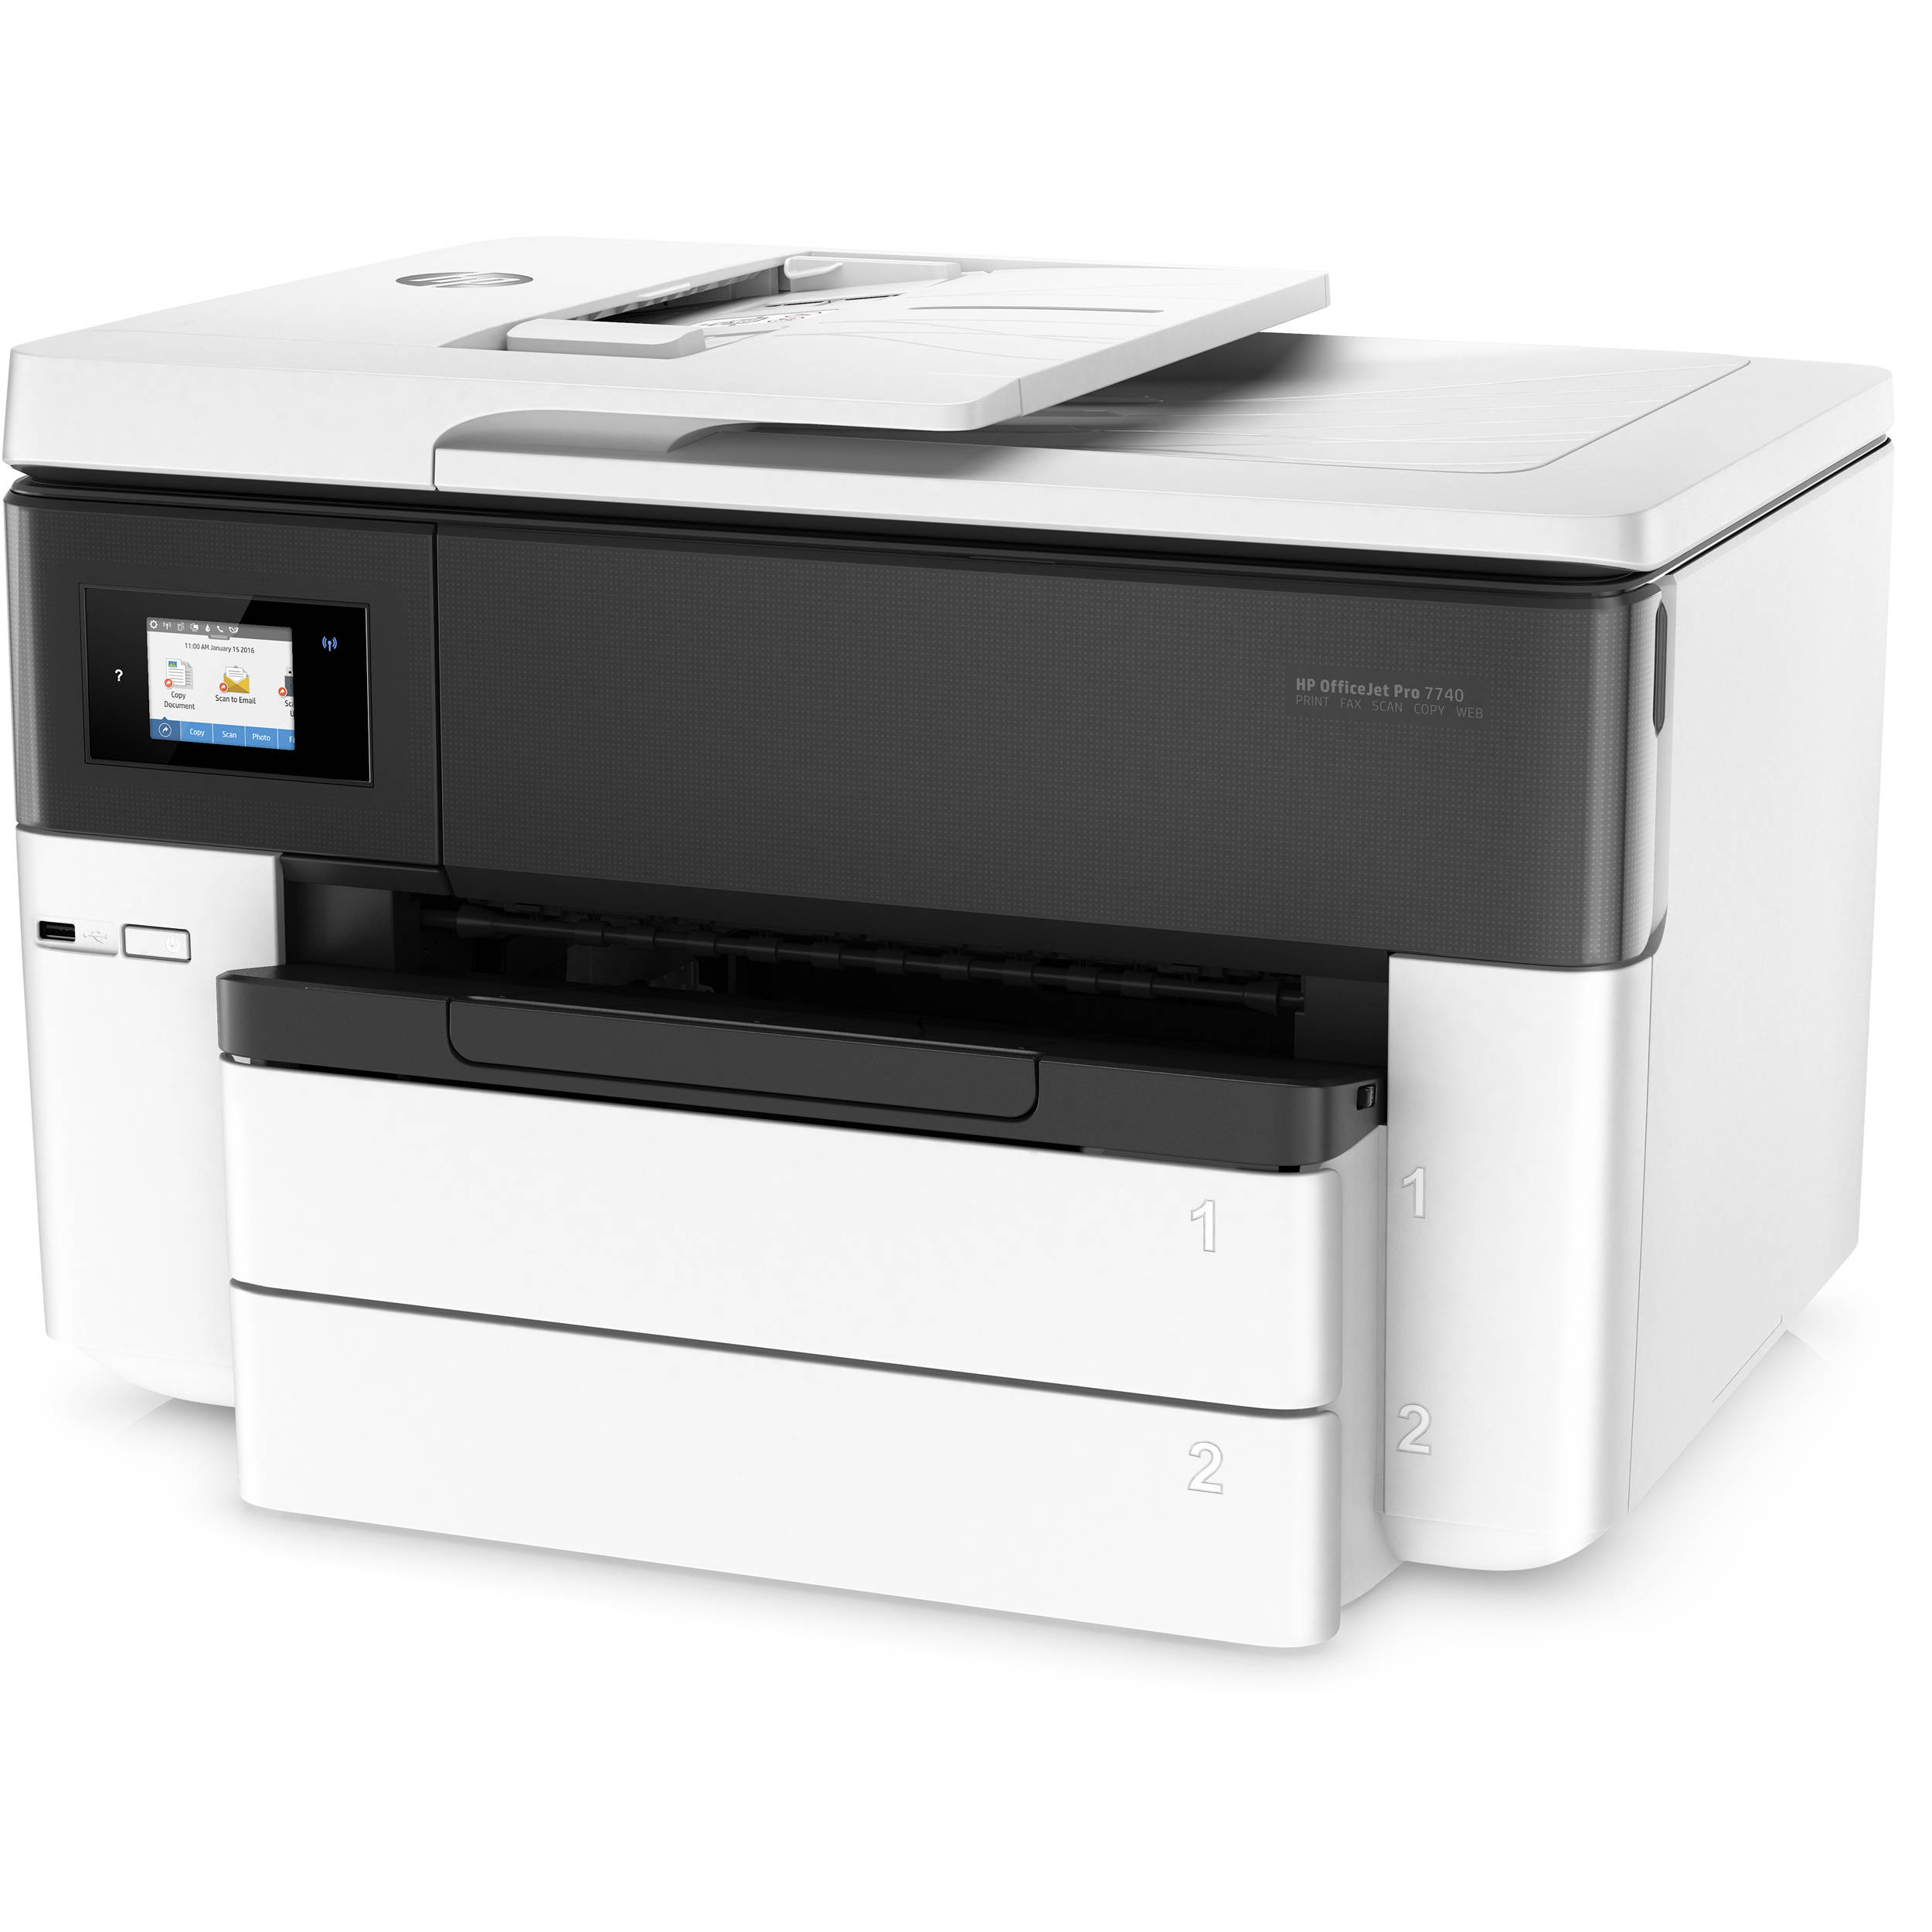 HP OfficeJet Pro 7740 for sale Trinidad